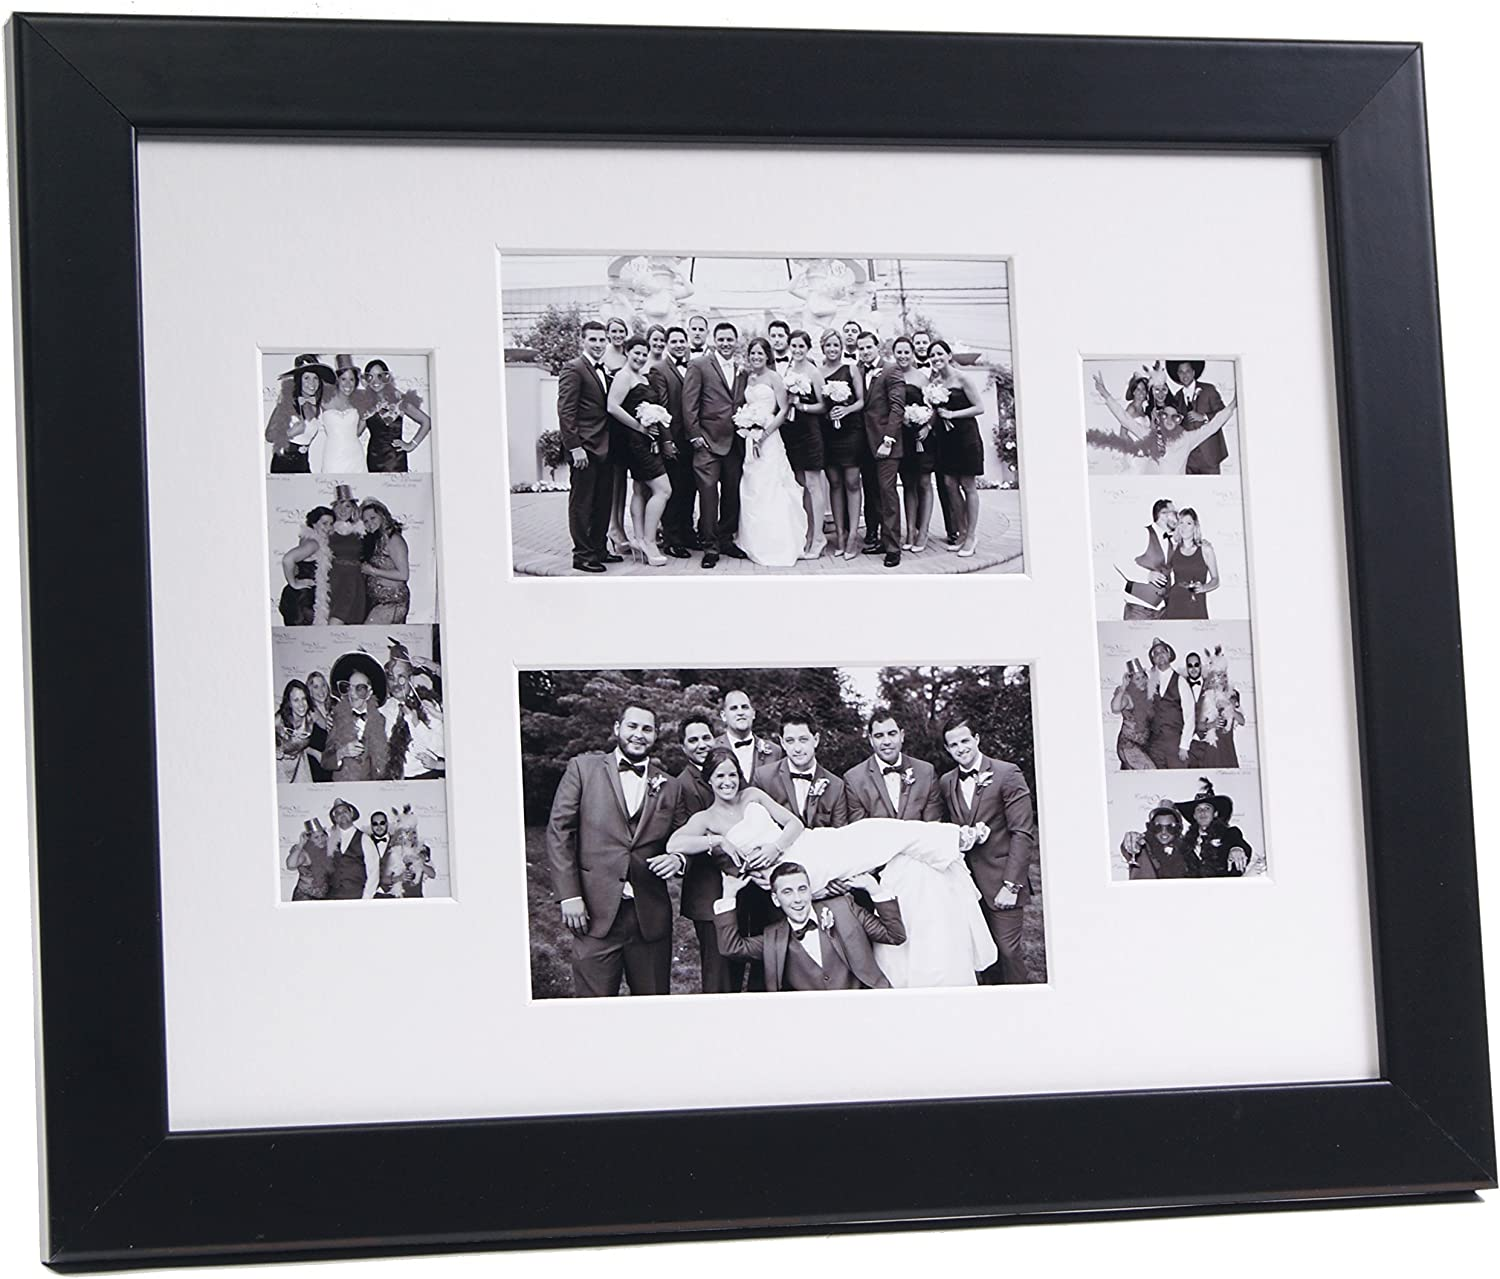 Black Photo Booth Frame w// Stand Holds 1-2x6 Strip with Mat